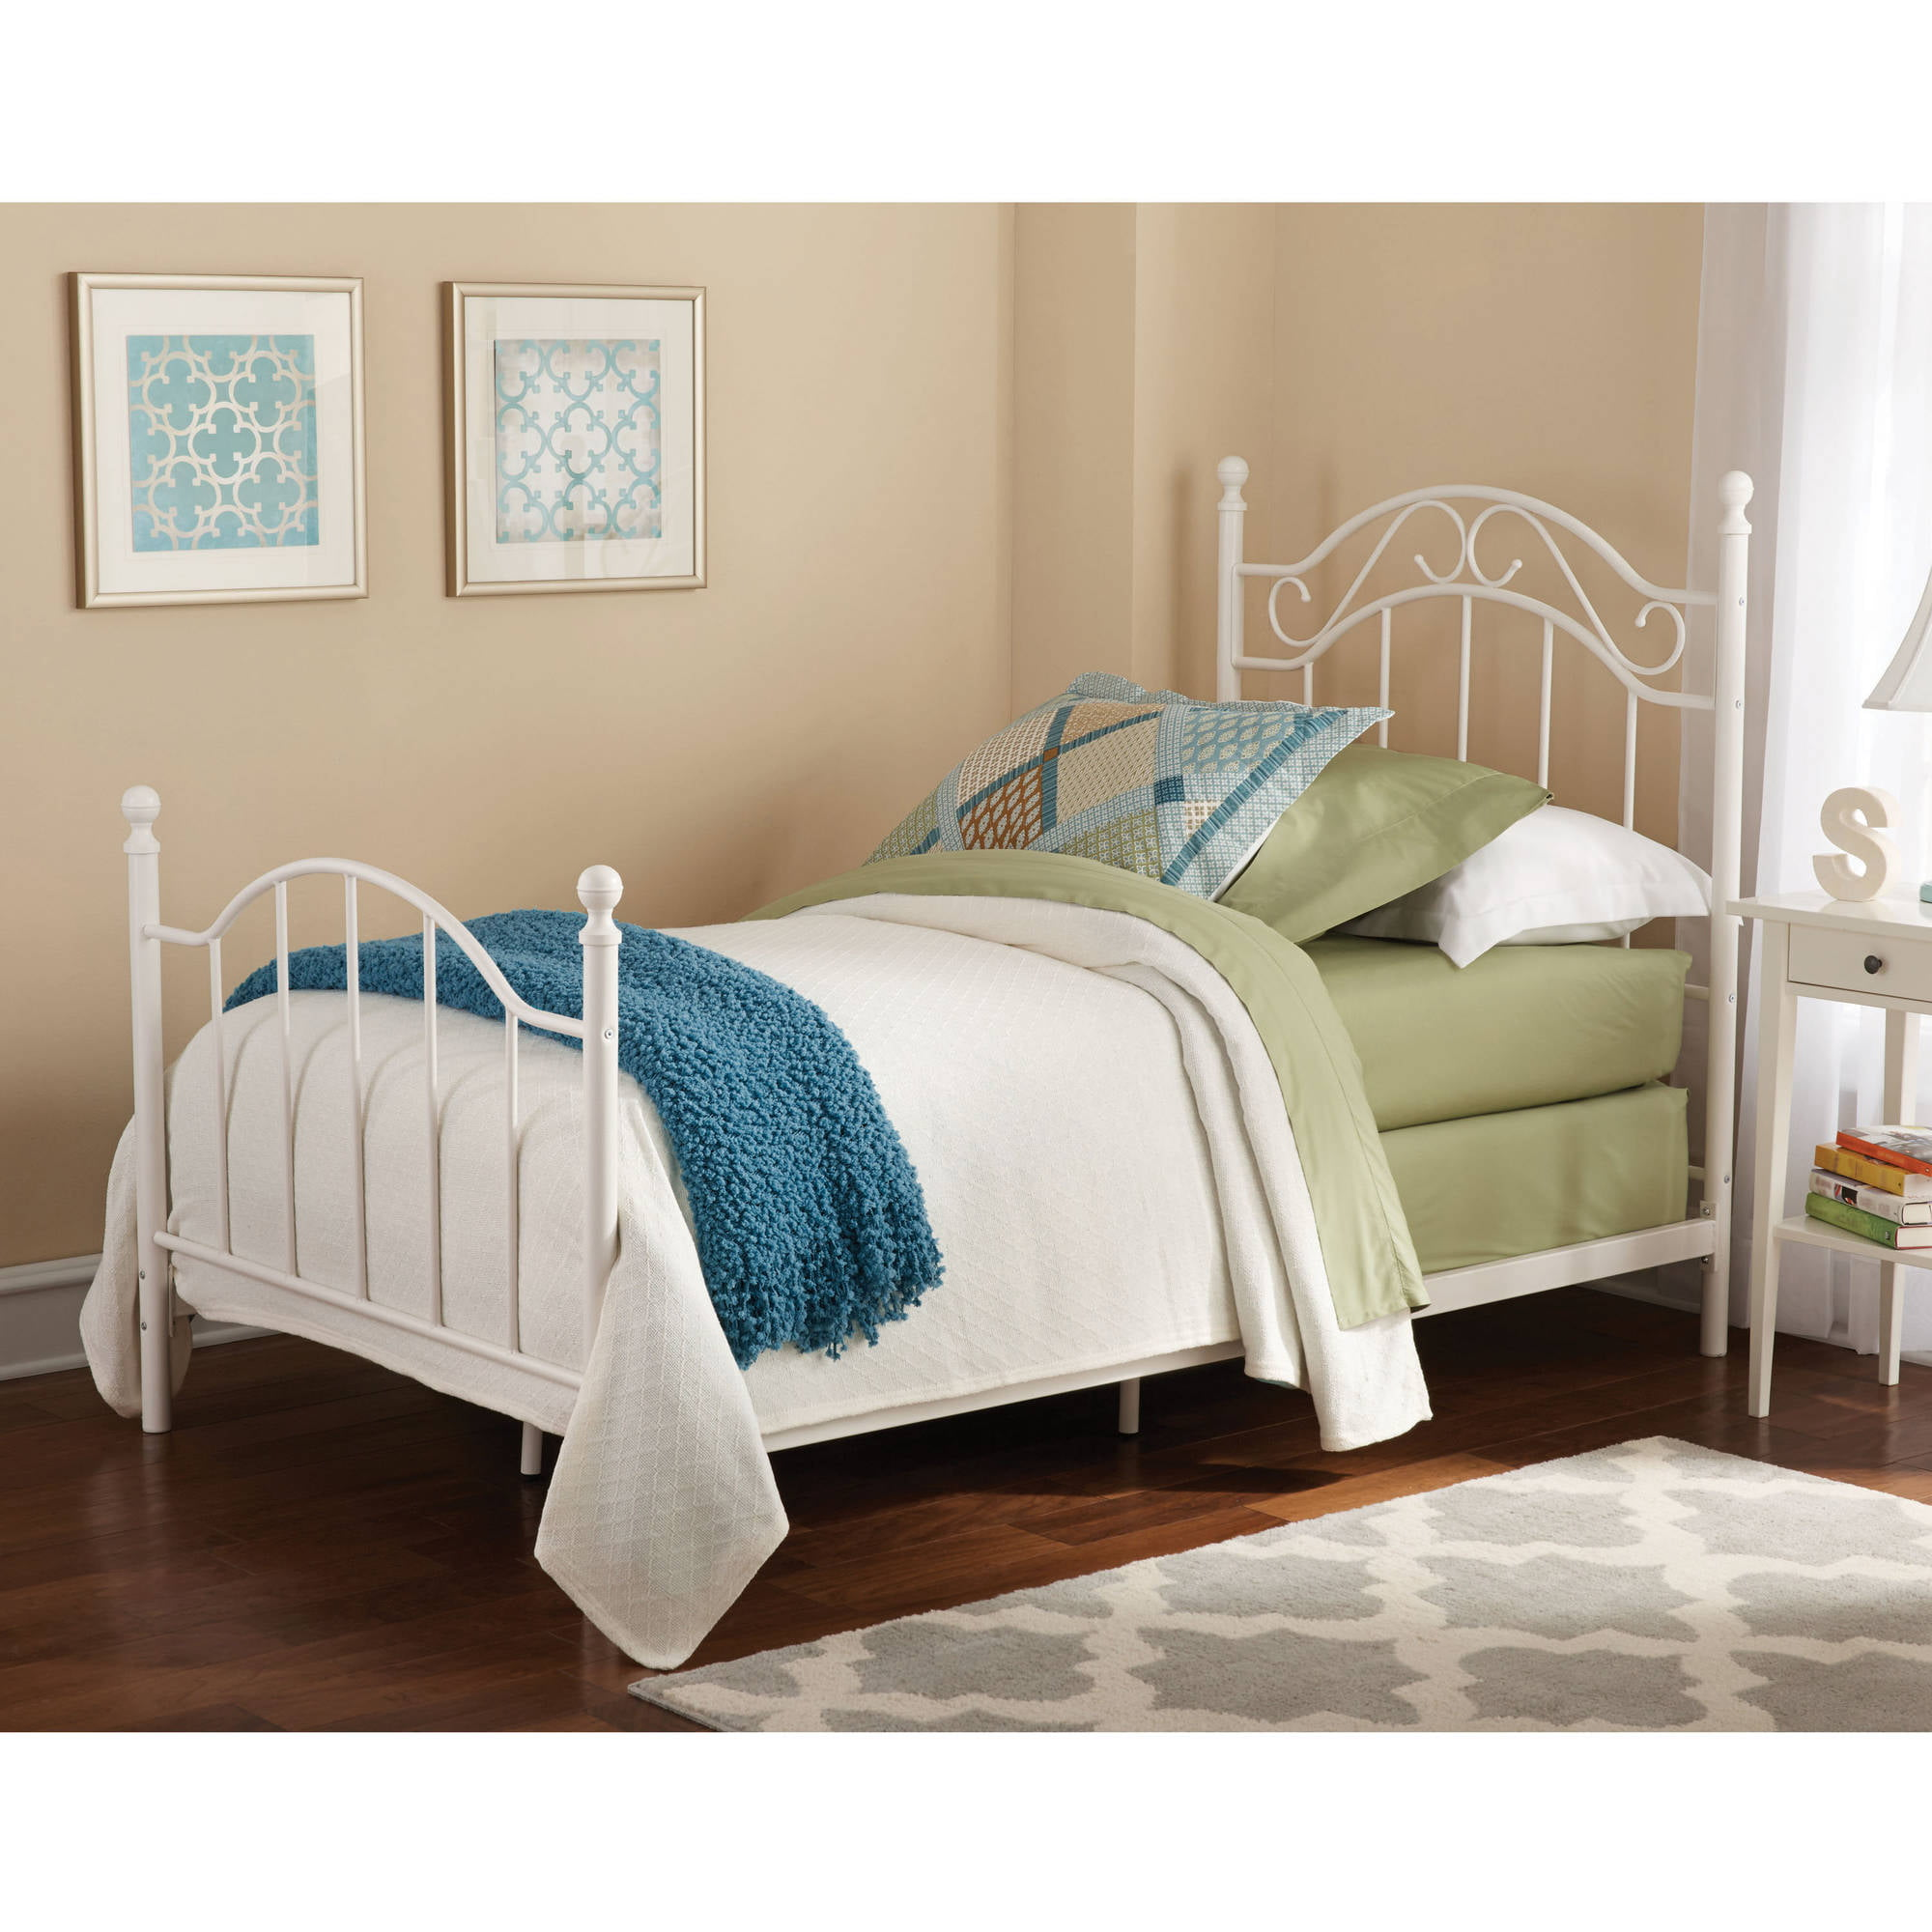 walmart full size bed - Bare.bearsbackyard.co